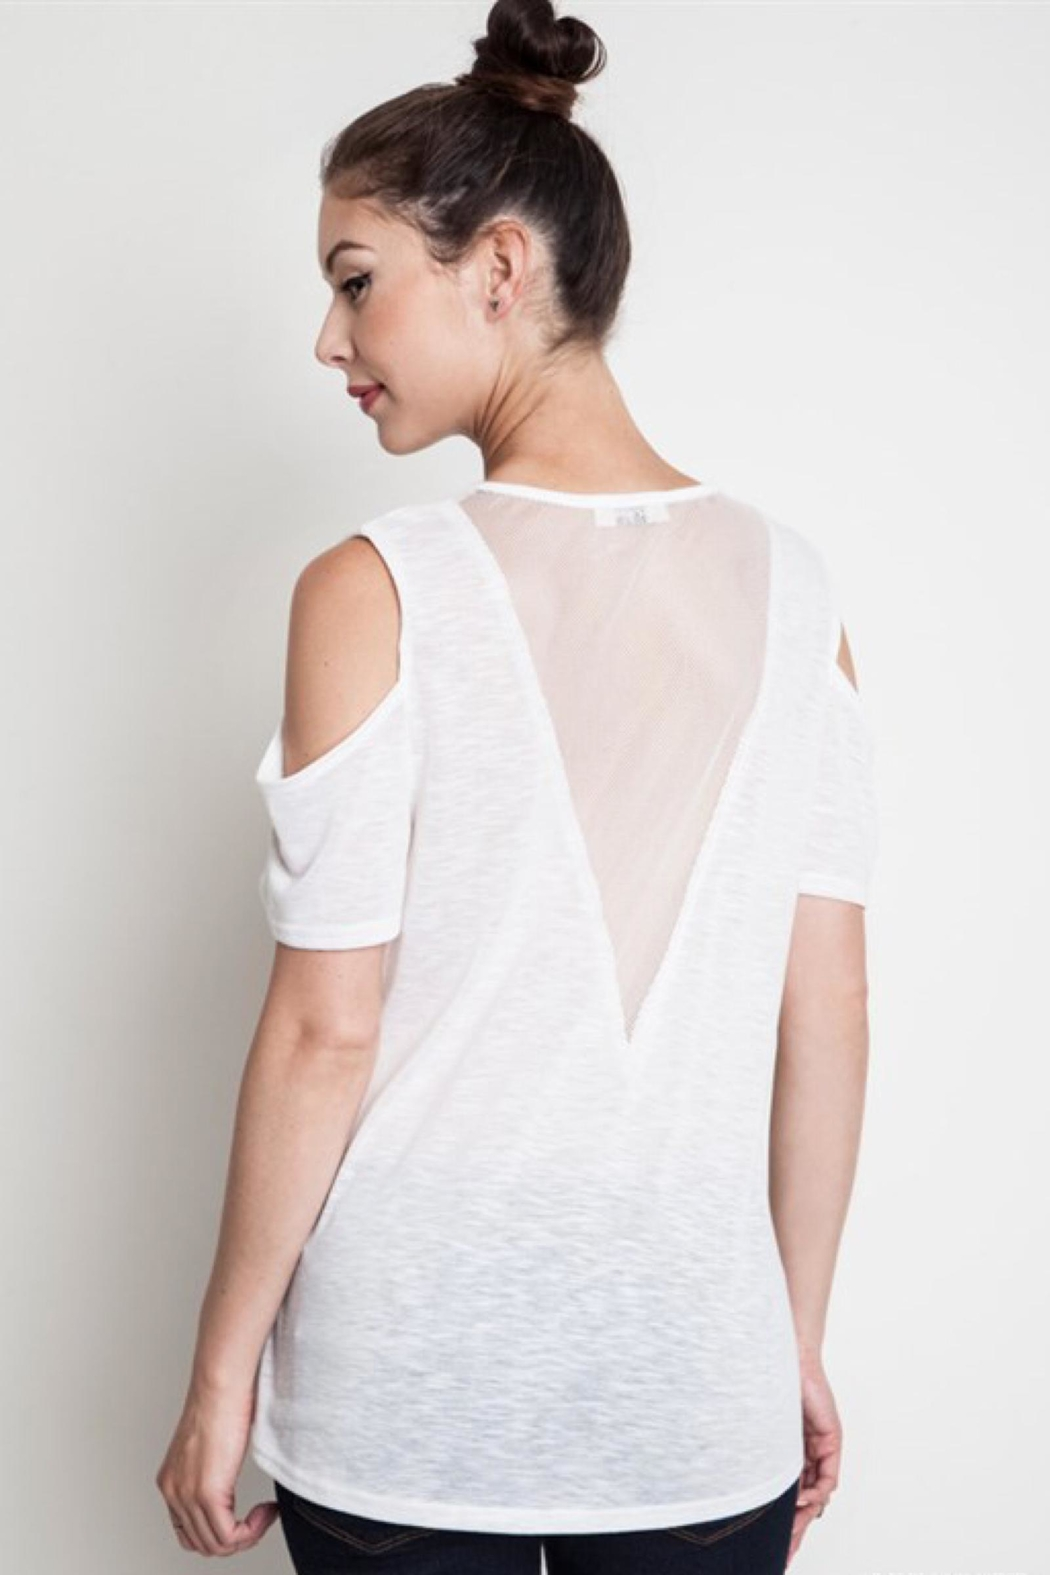 People Outfitter Mesh White Tee - Main Image